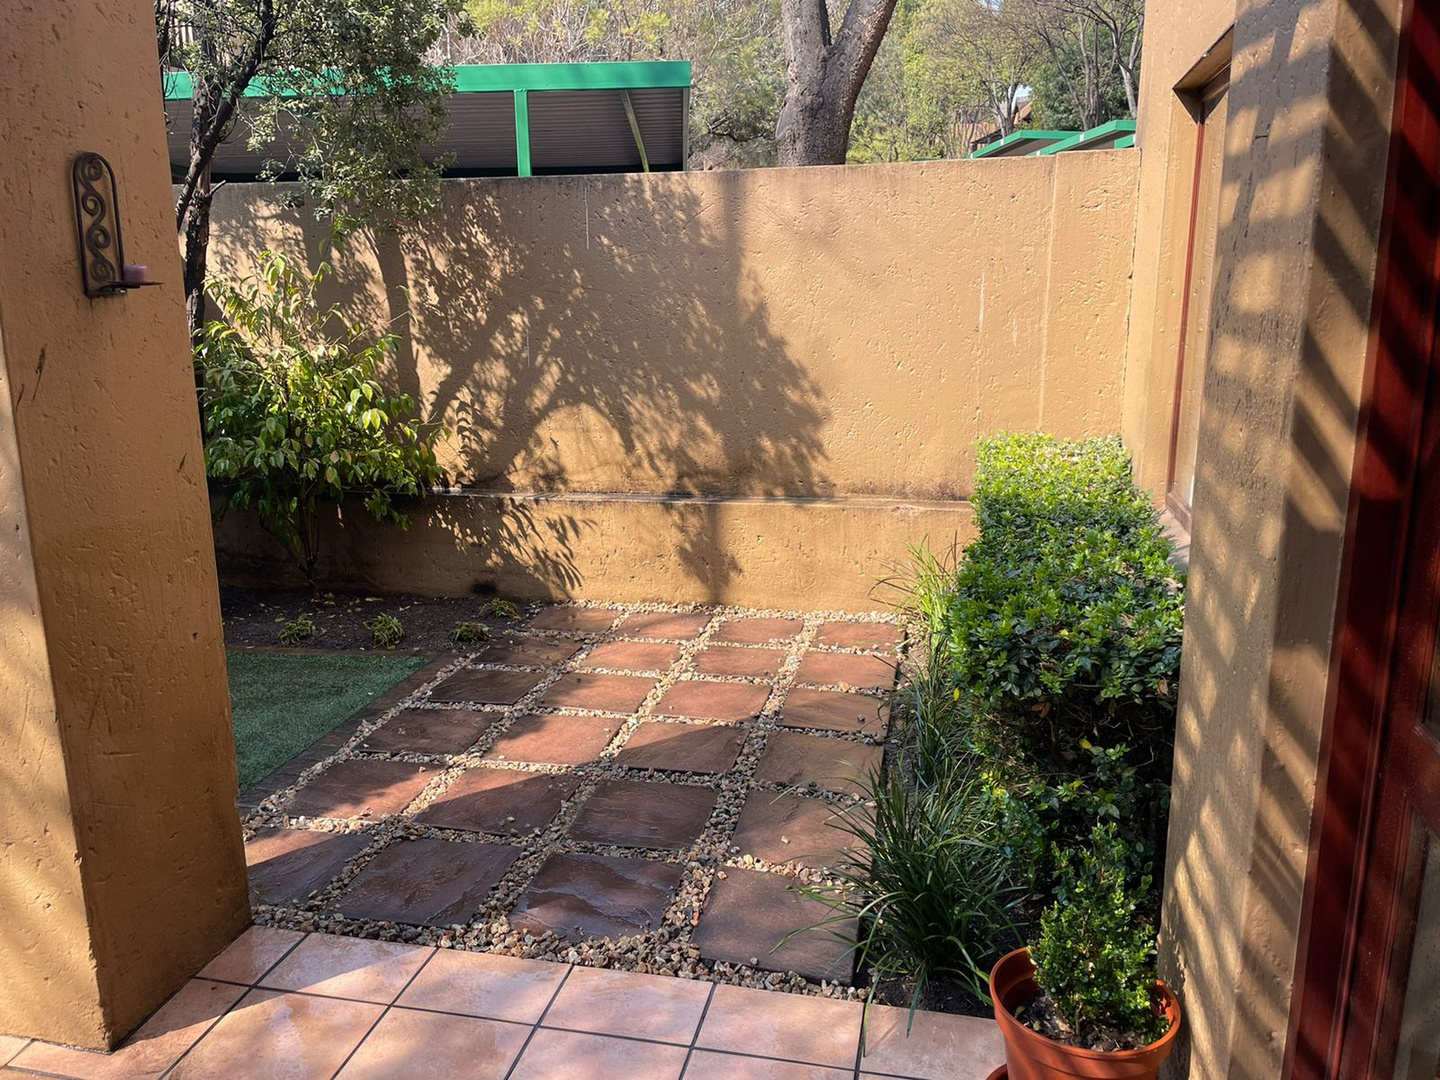 Apartment in Douglasdale - WhatsApp Image 2021-09-04 at 6.18.03 PM.jpeg